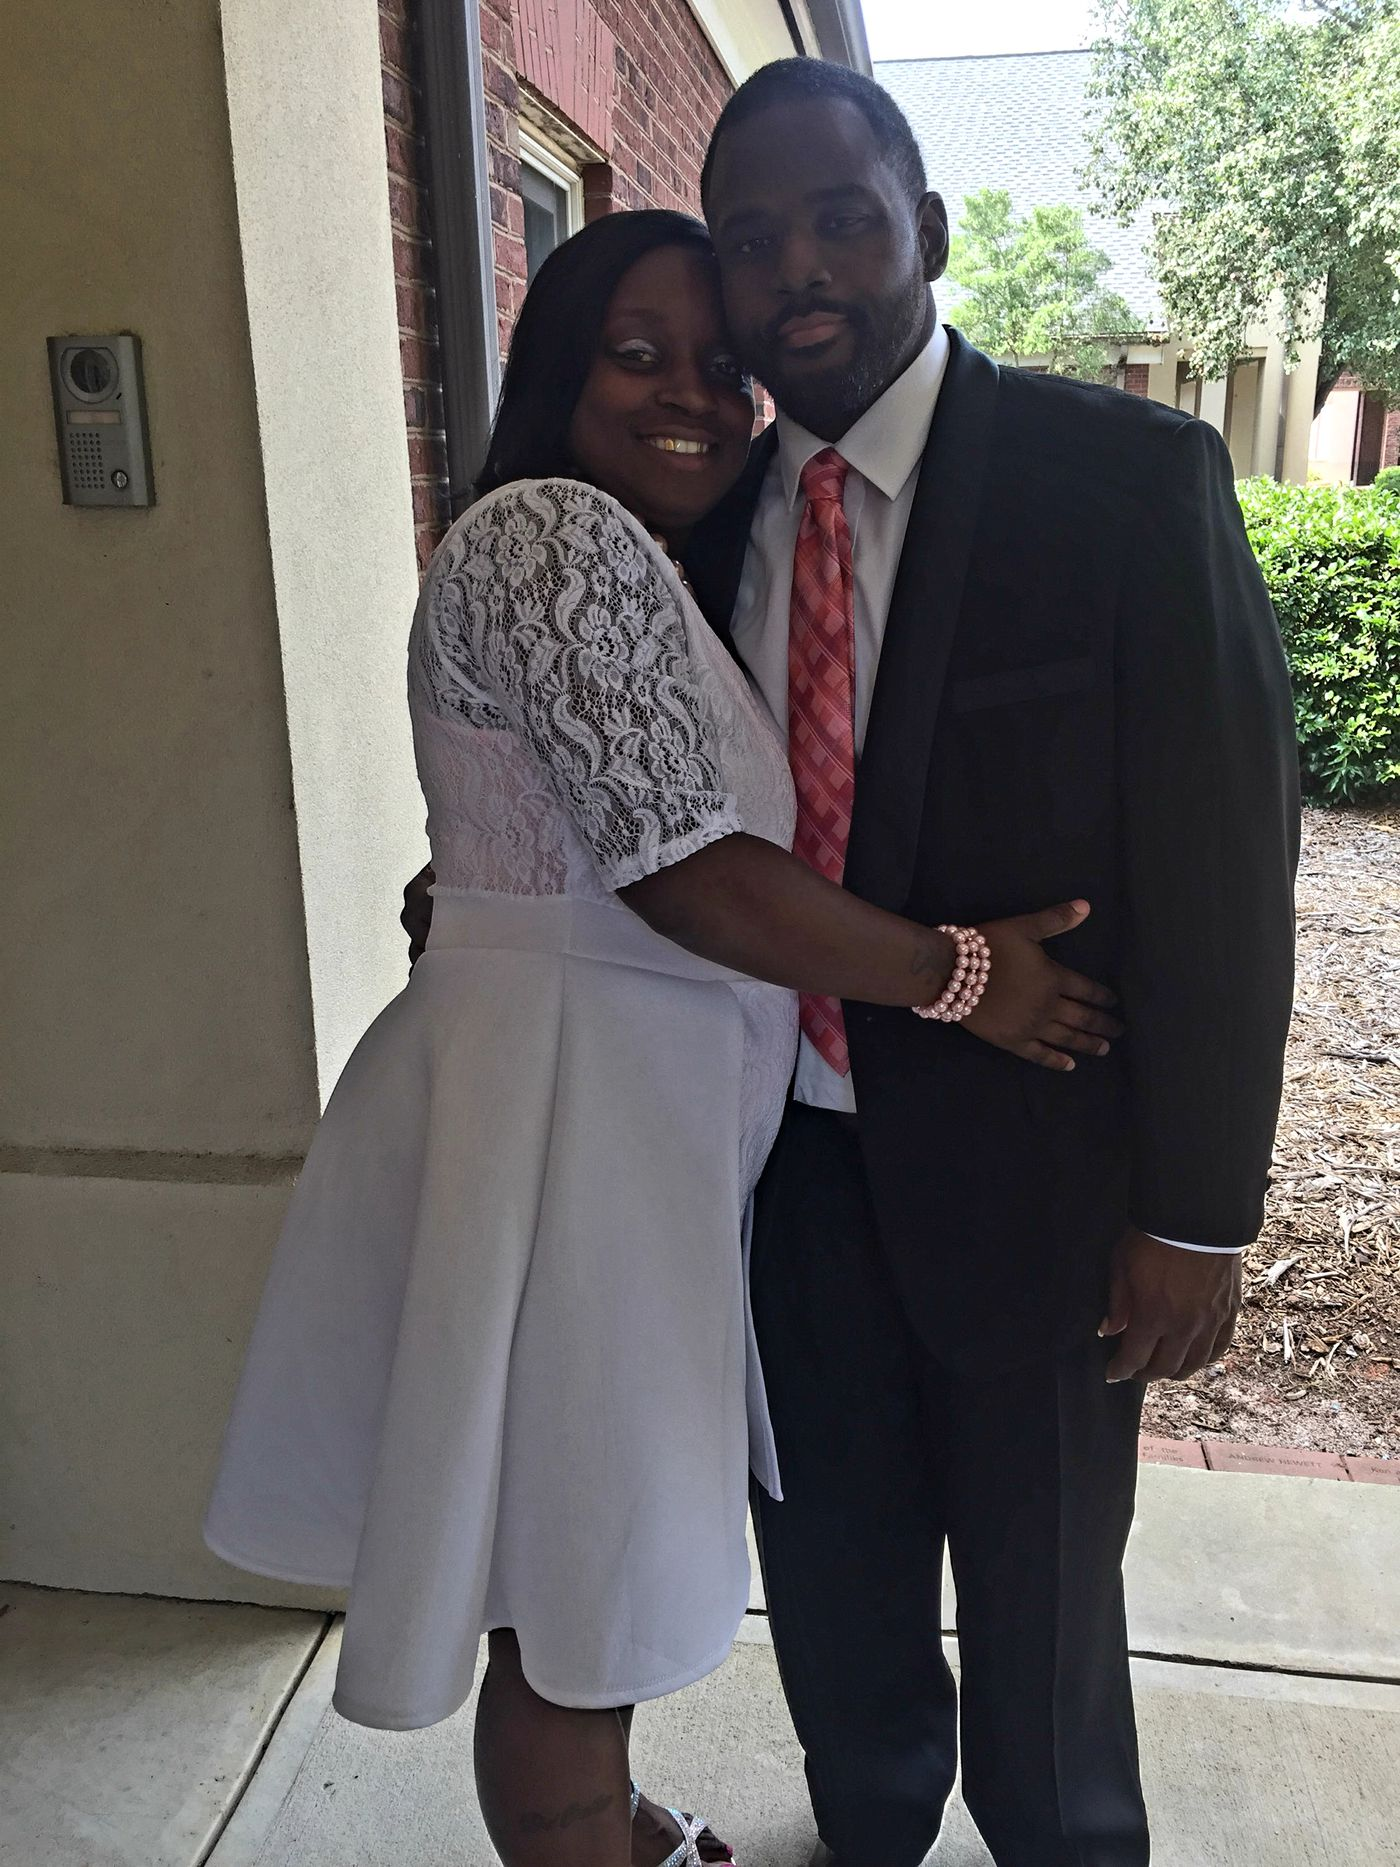 Alexis and her husband, Jheremi, at an event prior to the kidney transplant.